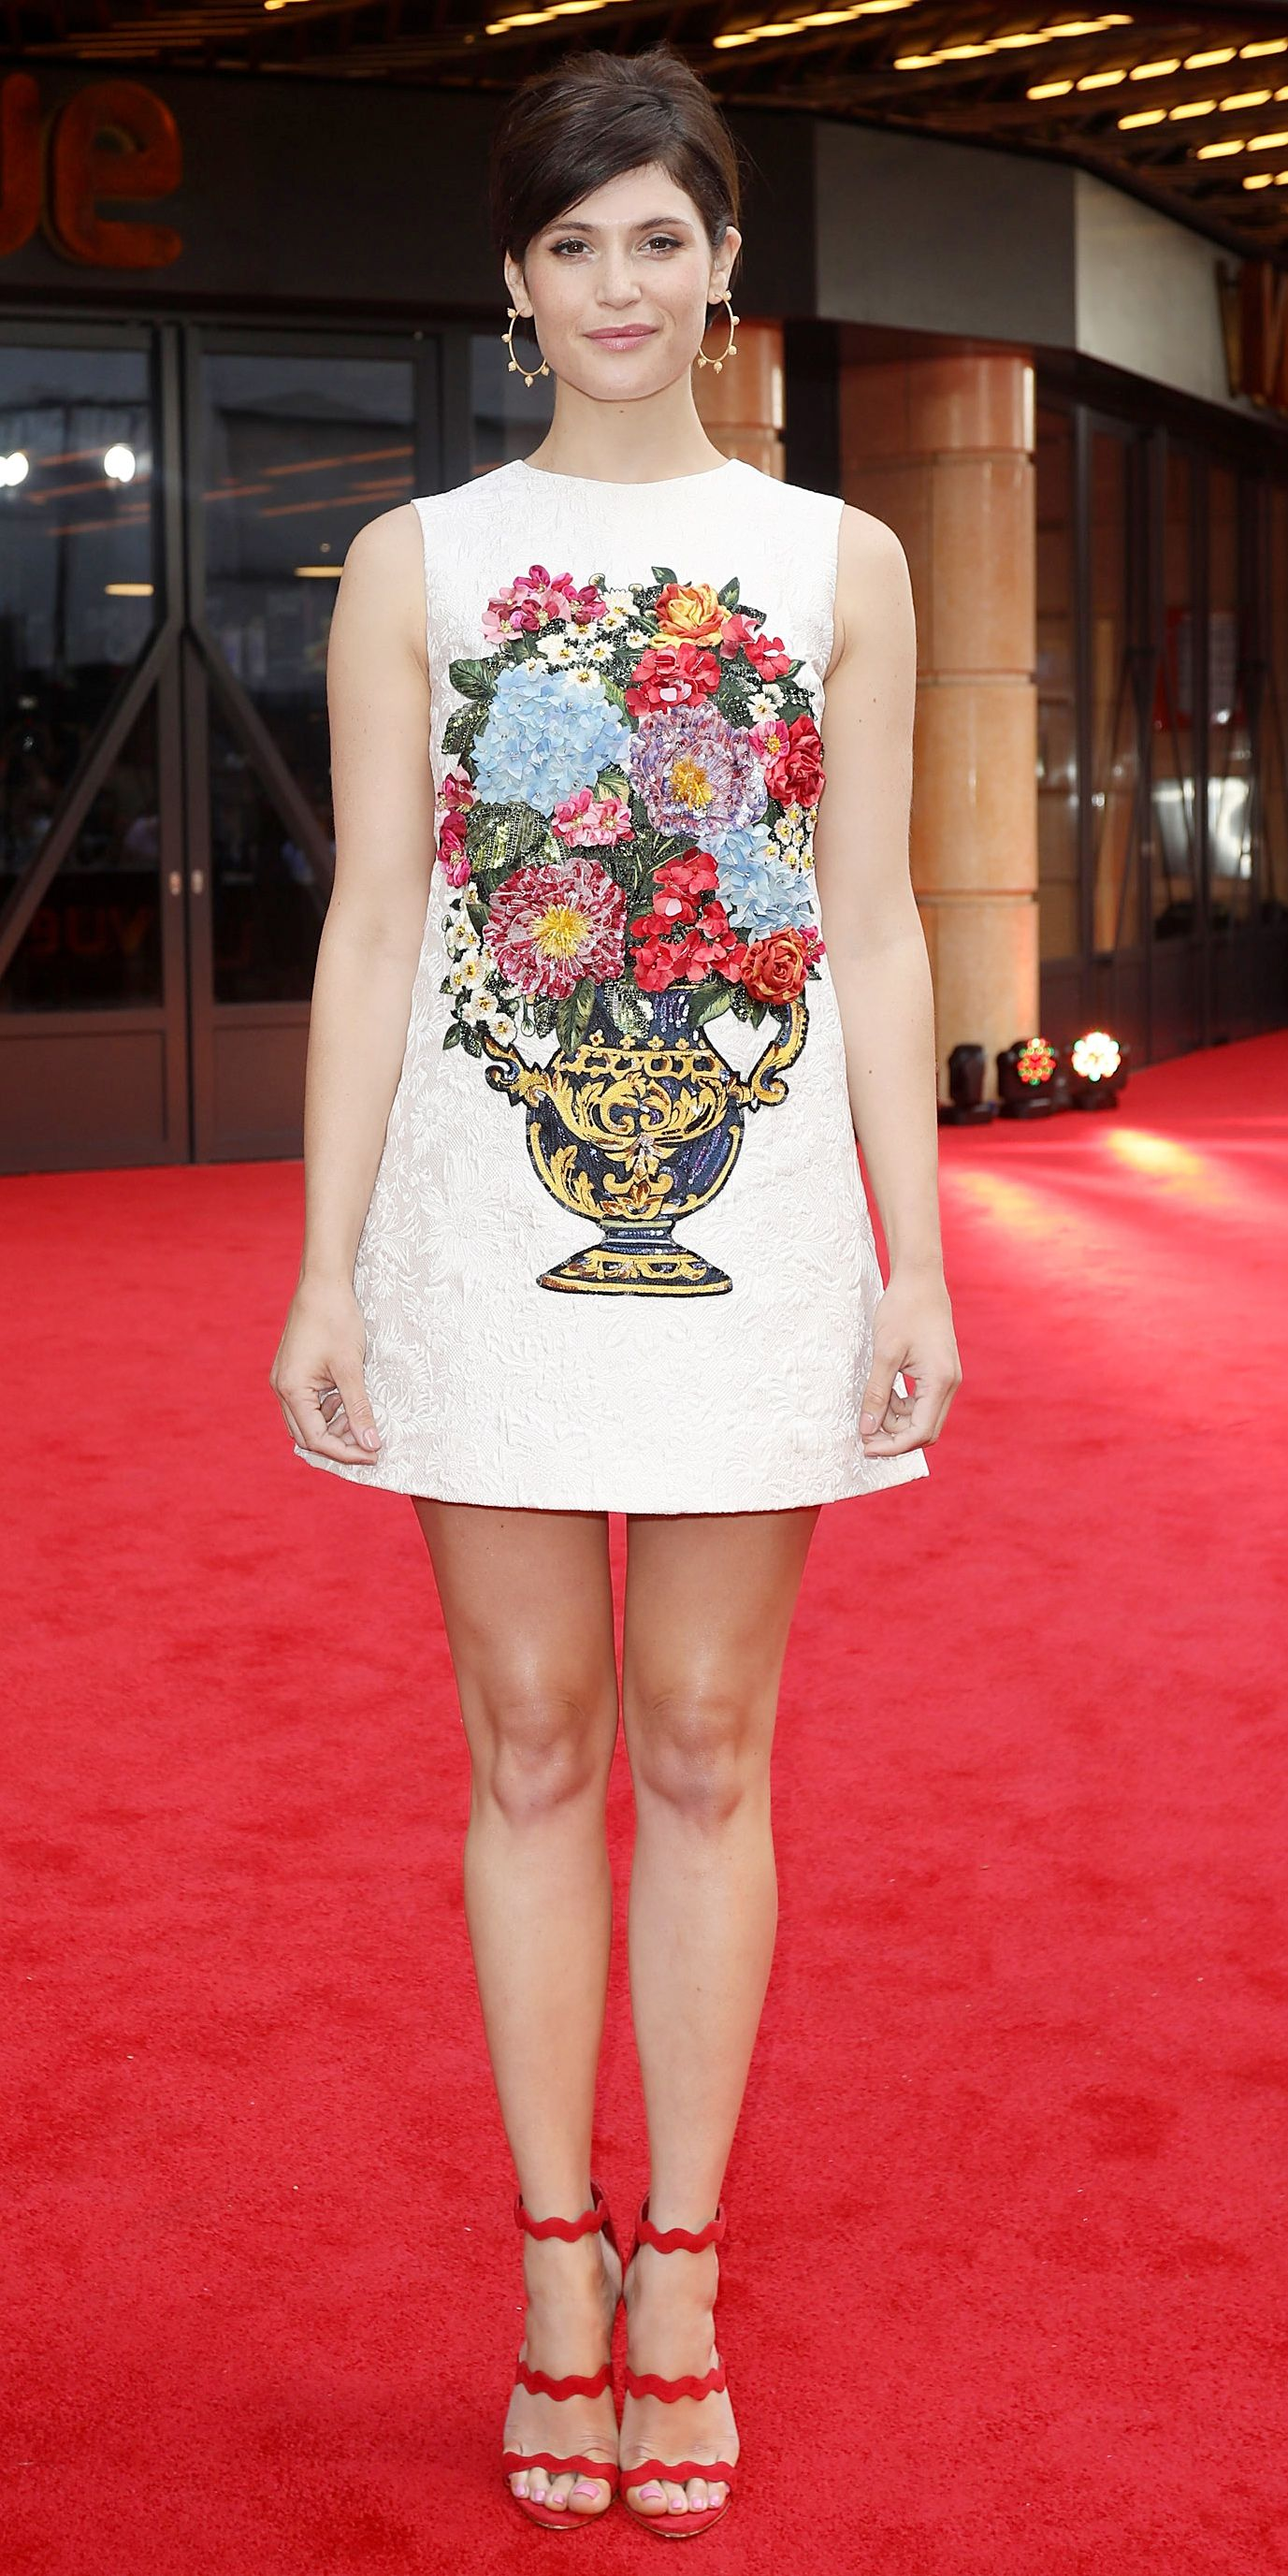 Look of the Day - Gemma Arterton from InStyle.com